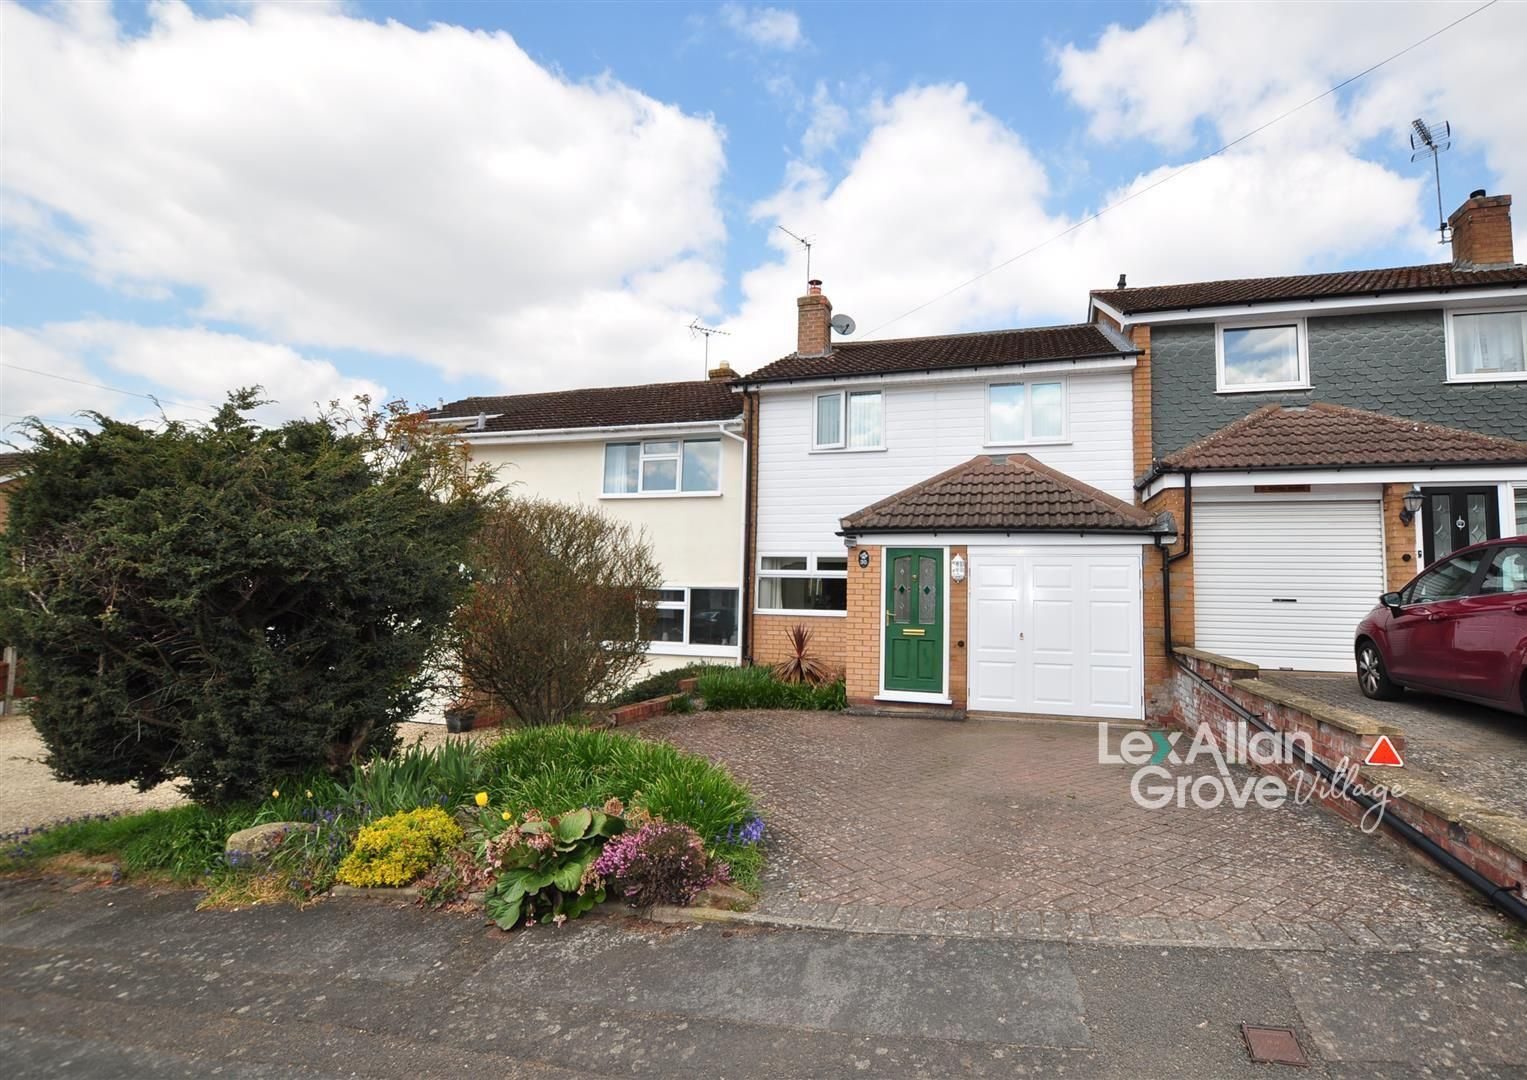 3 bed house for sale in Hagley 1